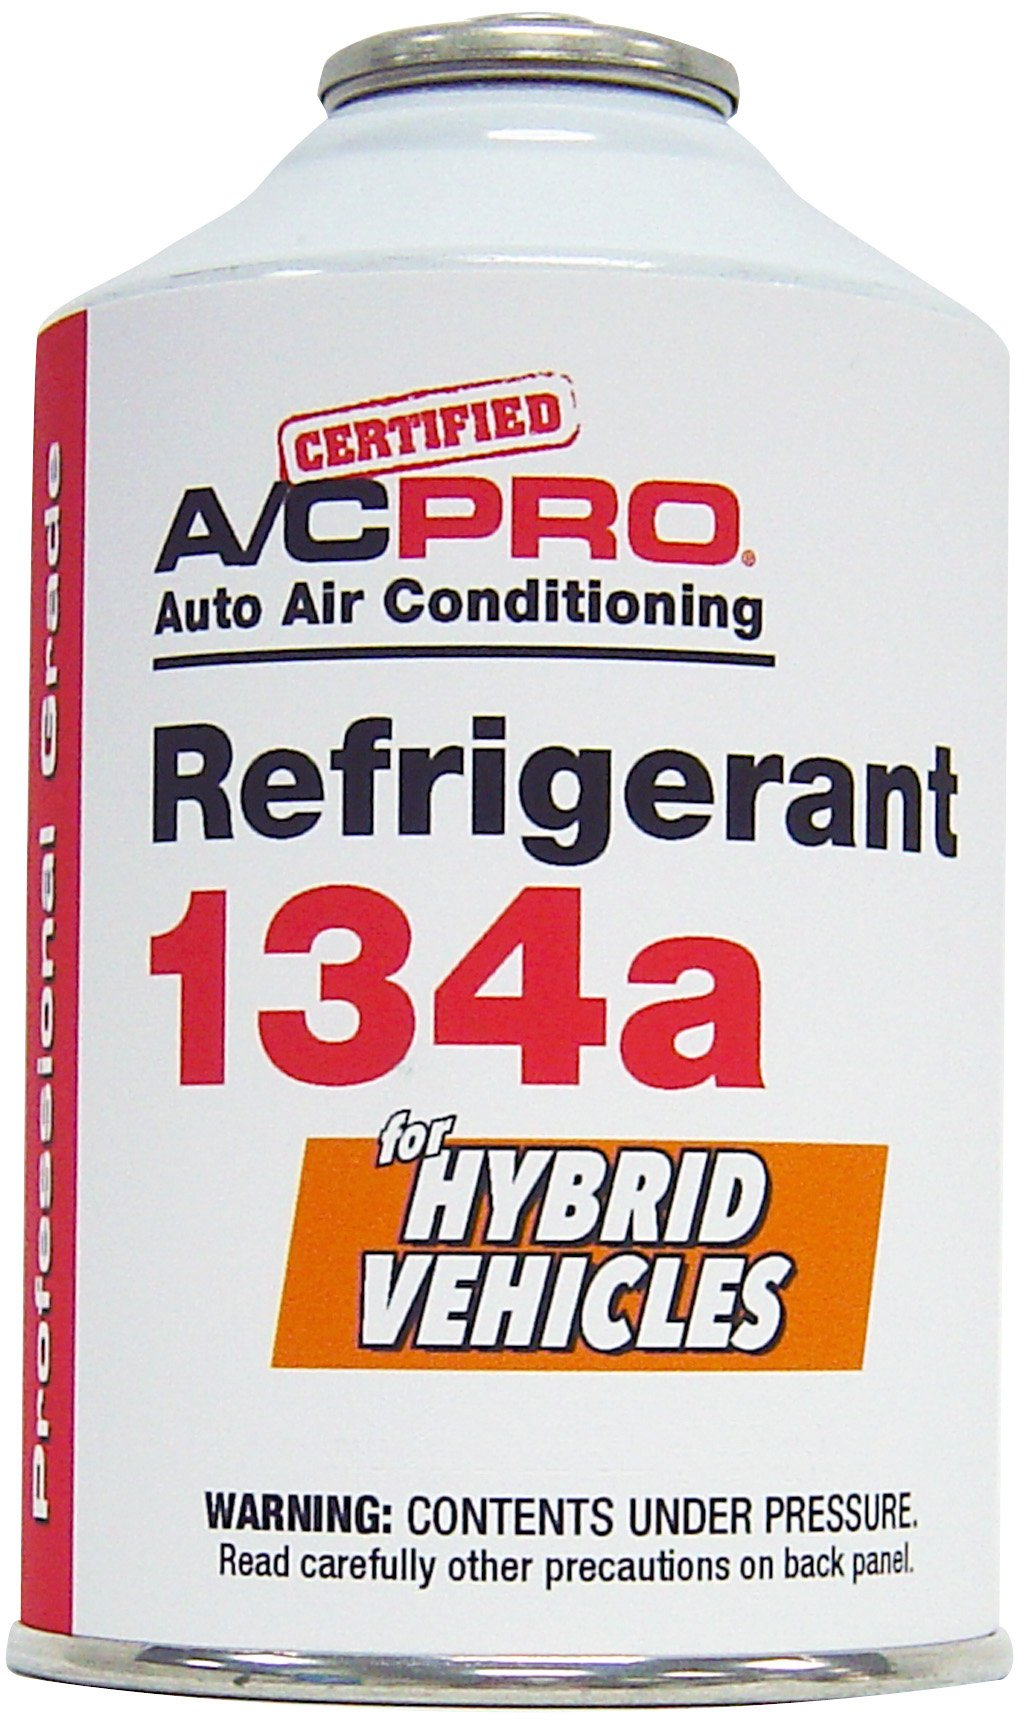 Interdynamics Certified A/C Pro Refrigerant 134a for Hybrid Vehicles (10 ounces) by Interdynamics